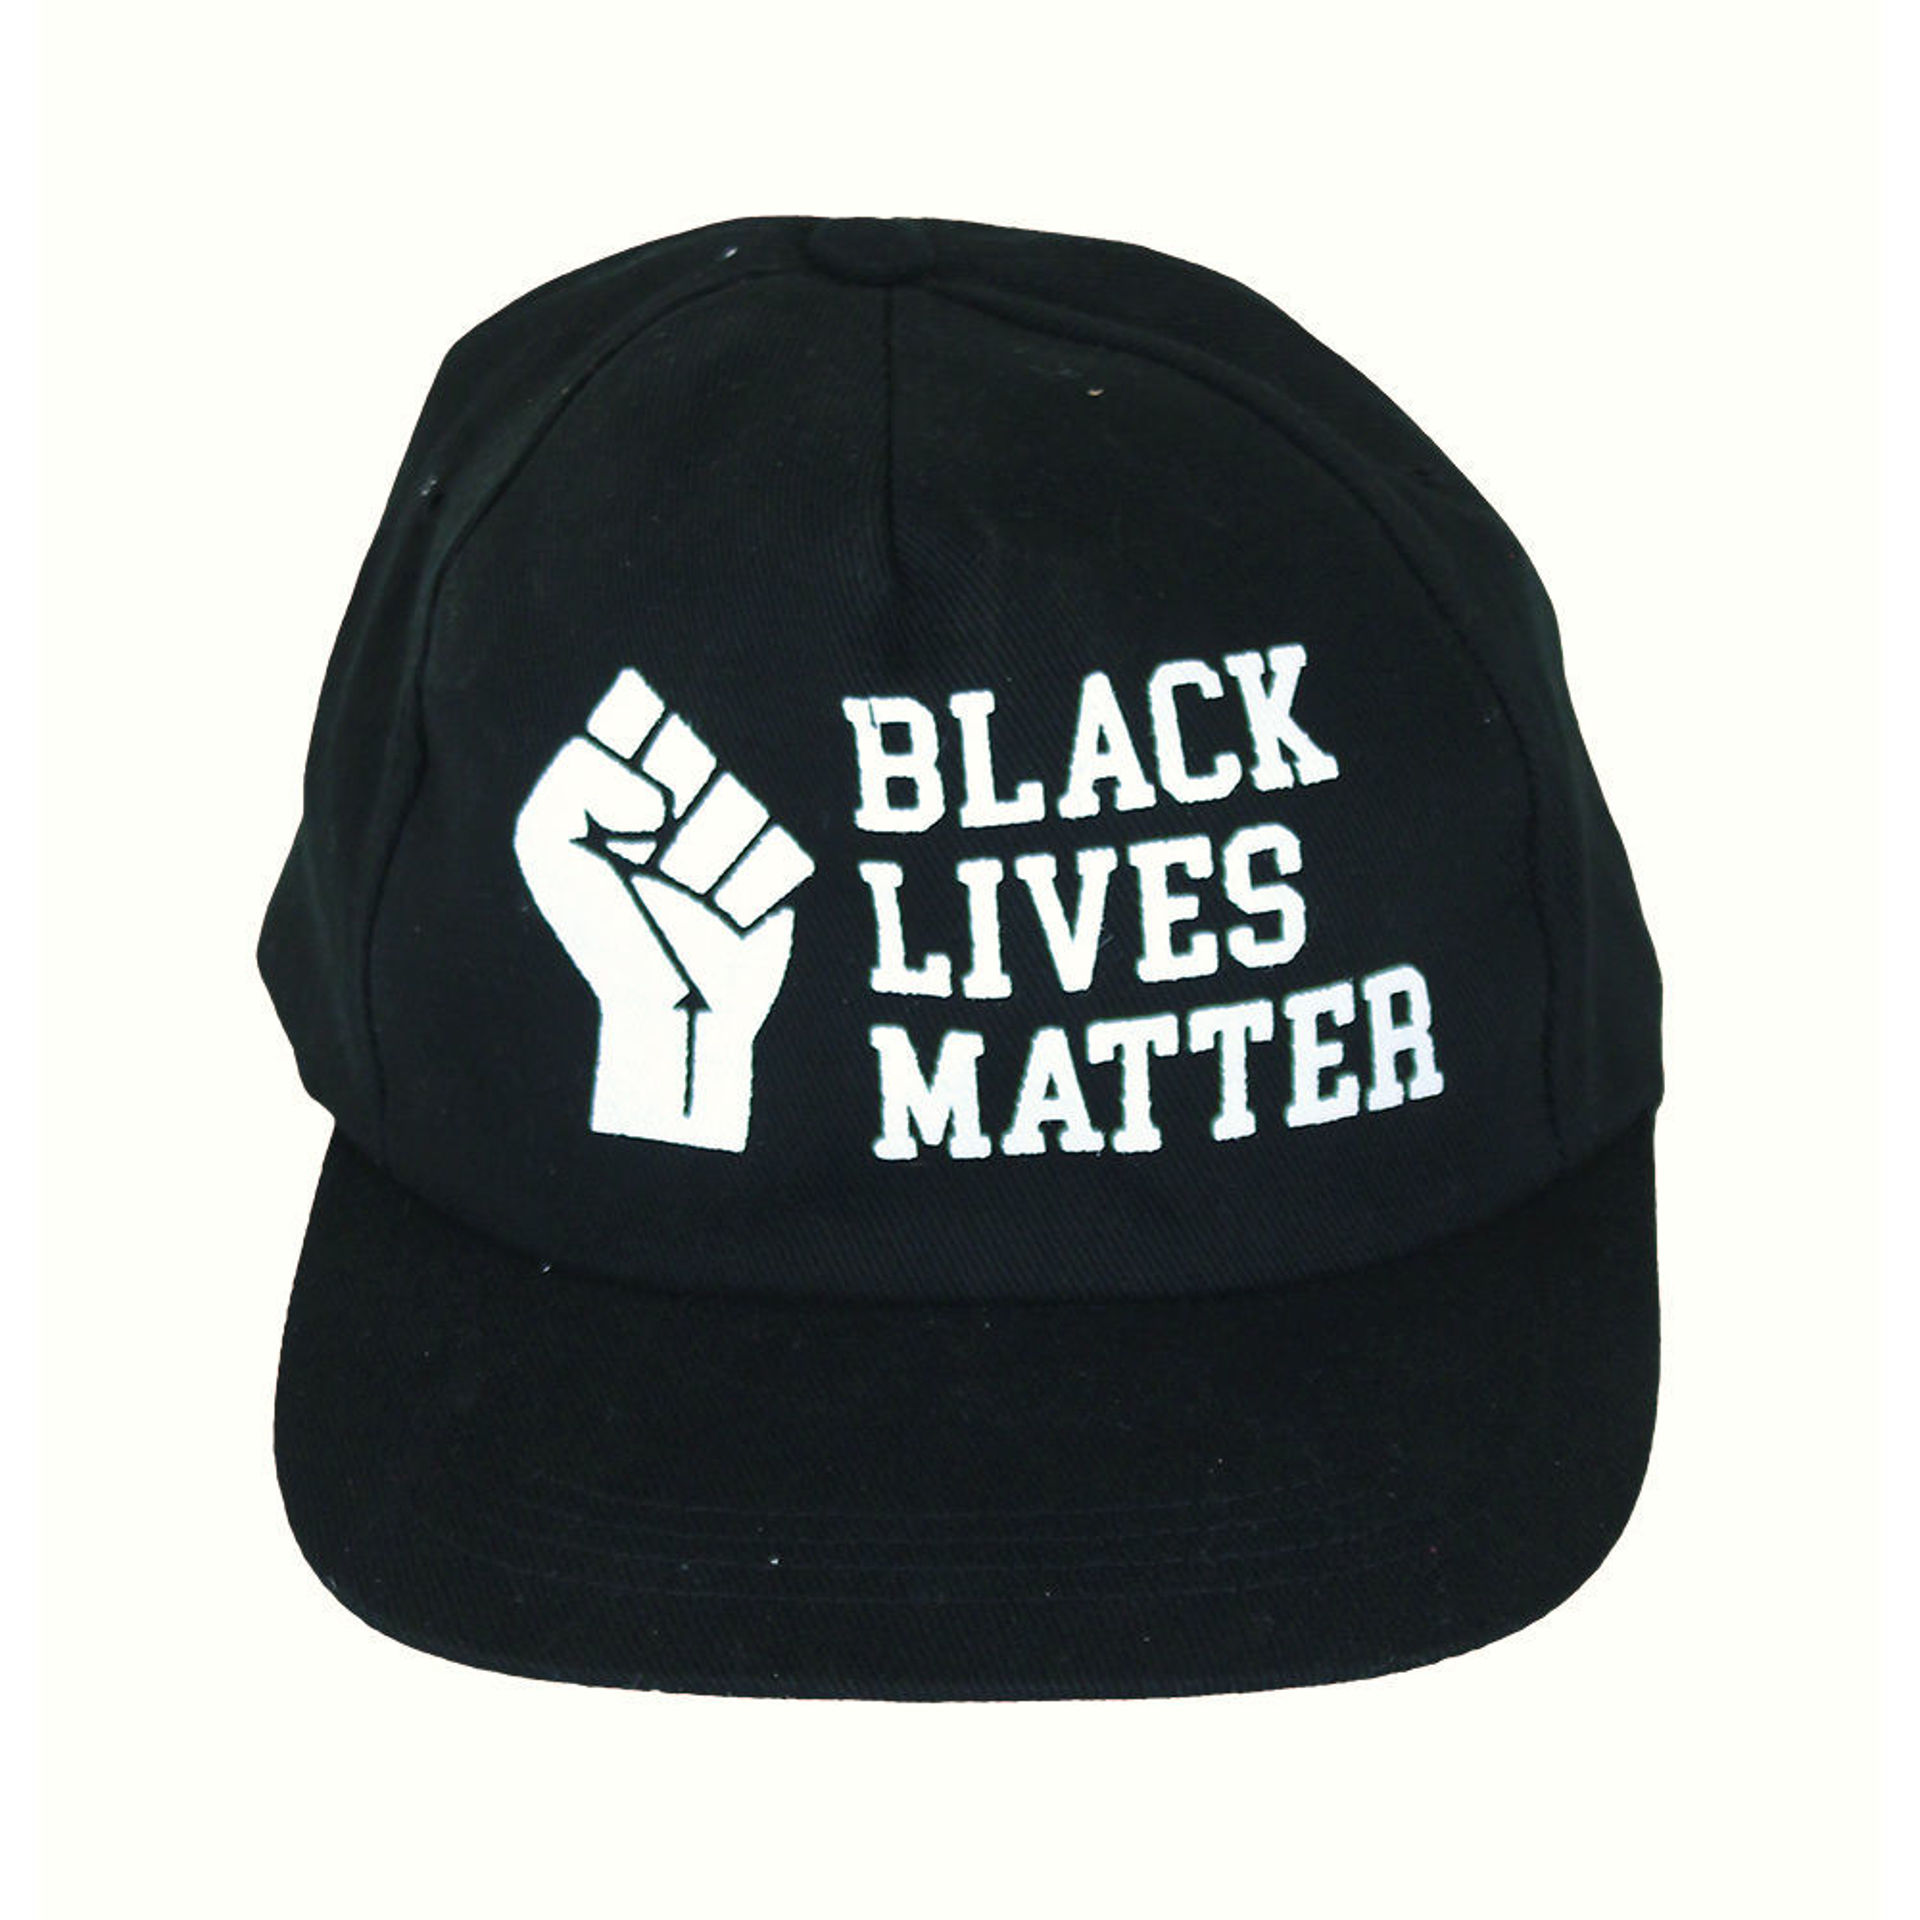 Picture of Black Power Fist Ball Cap